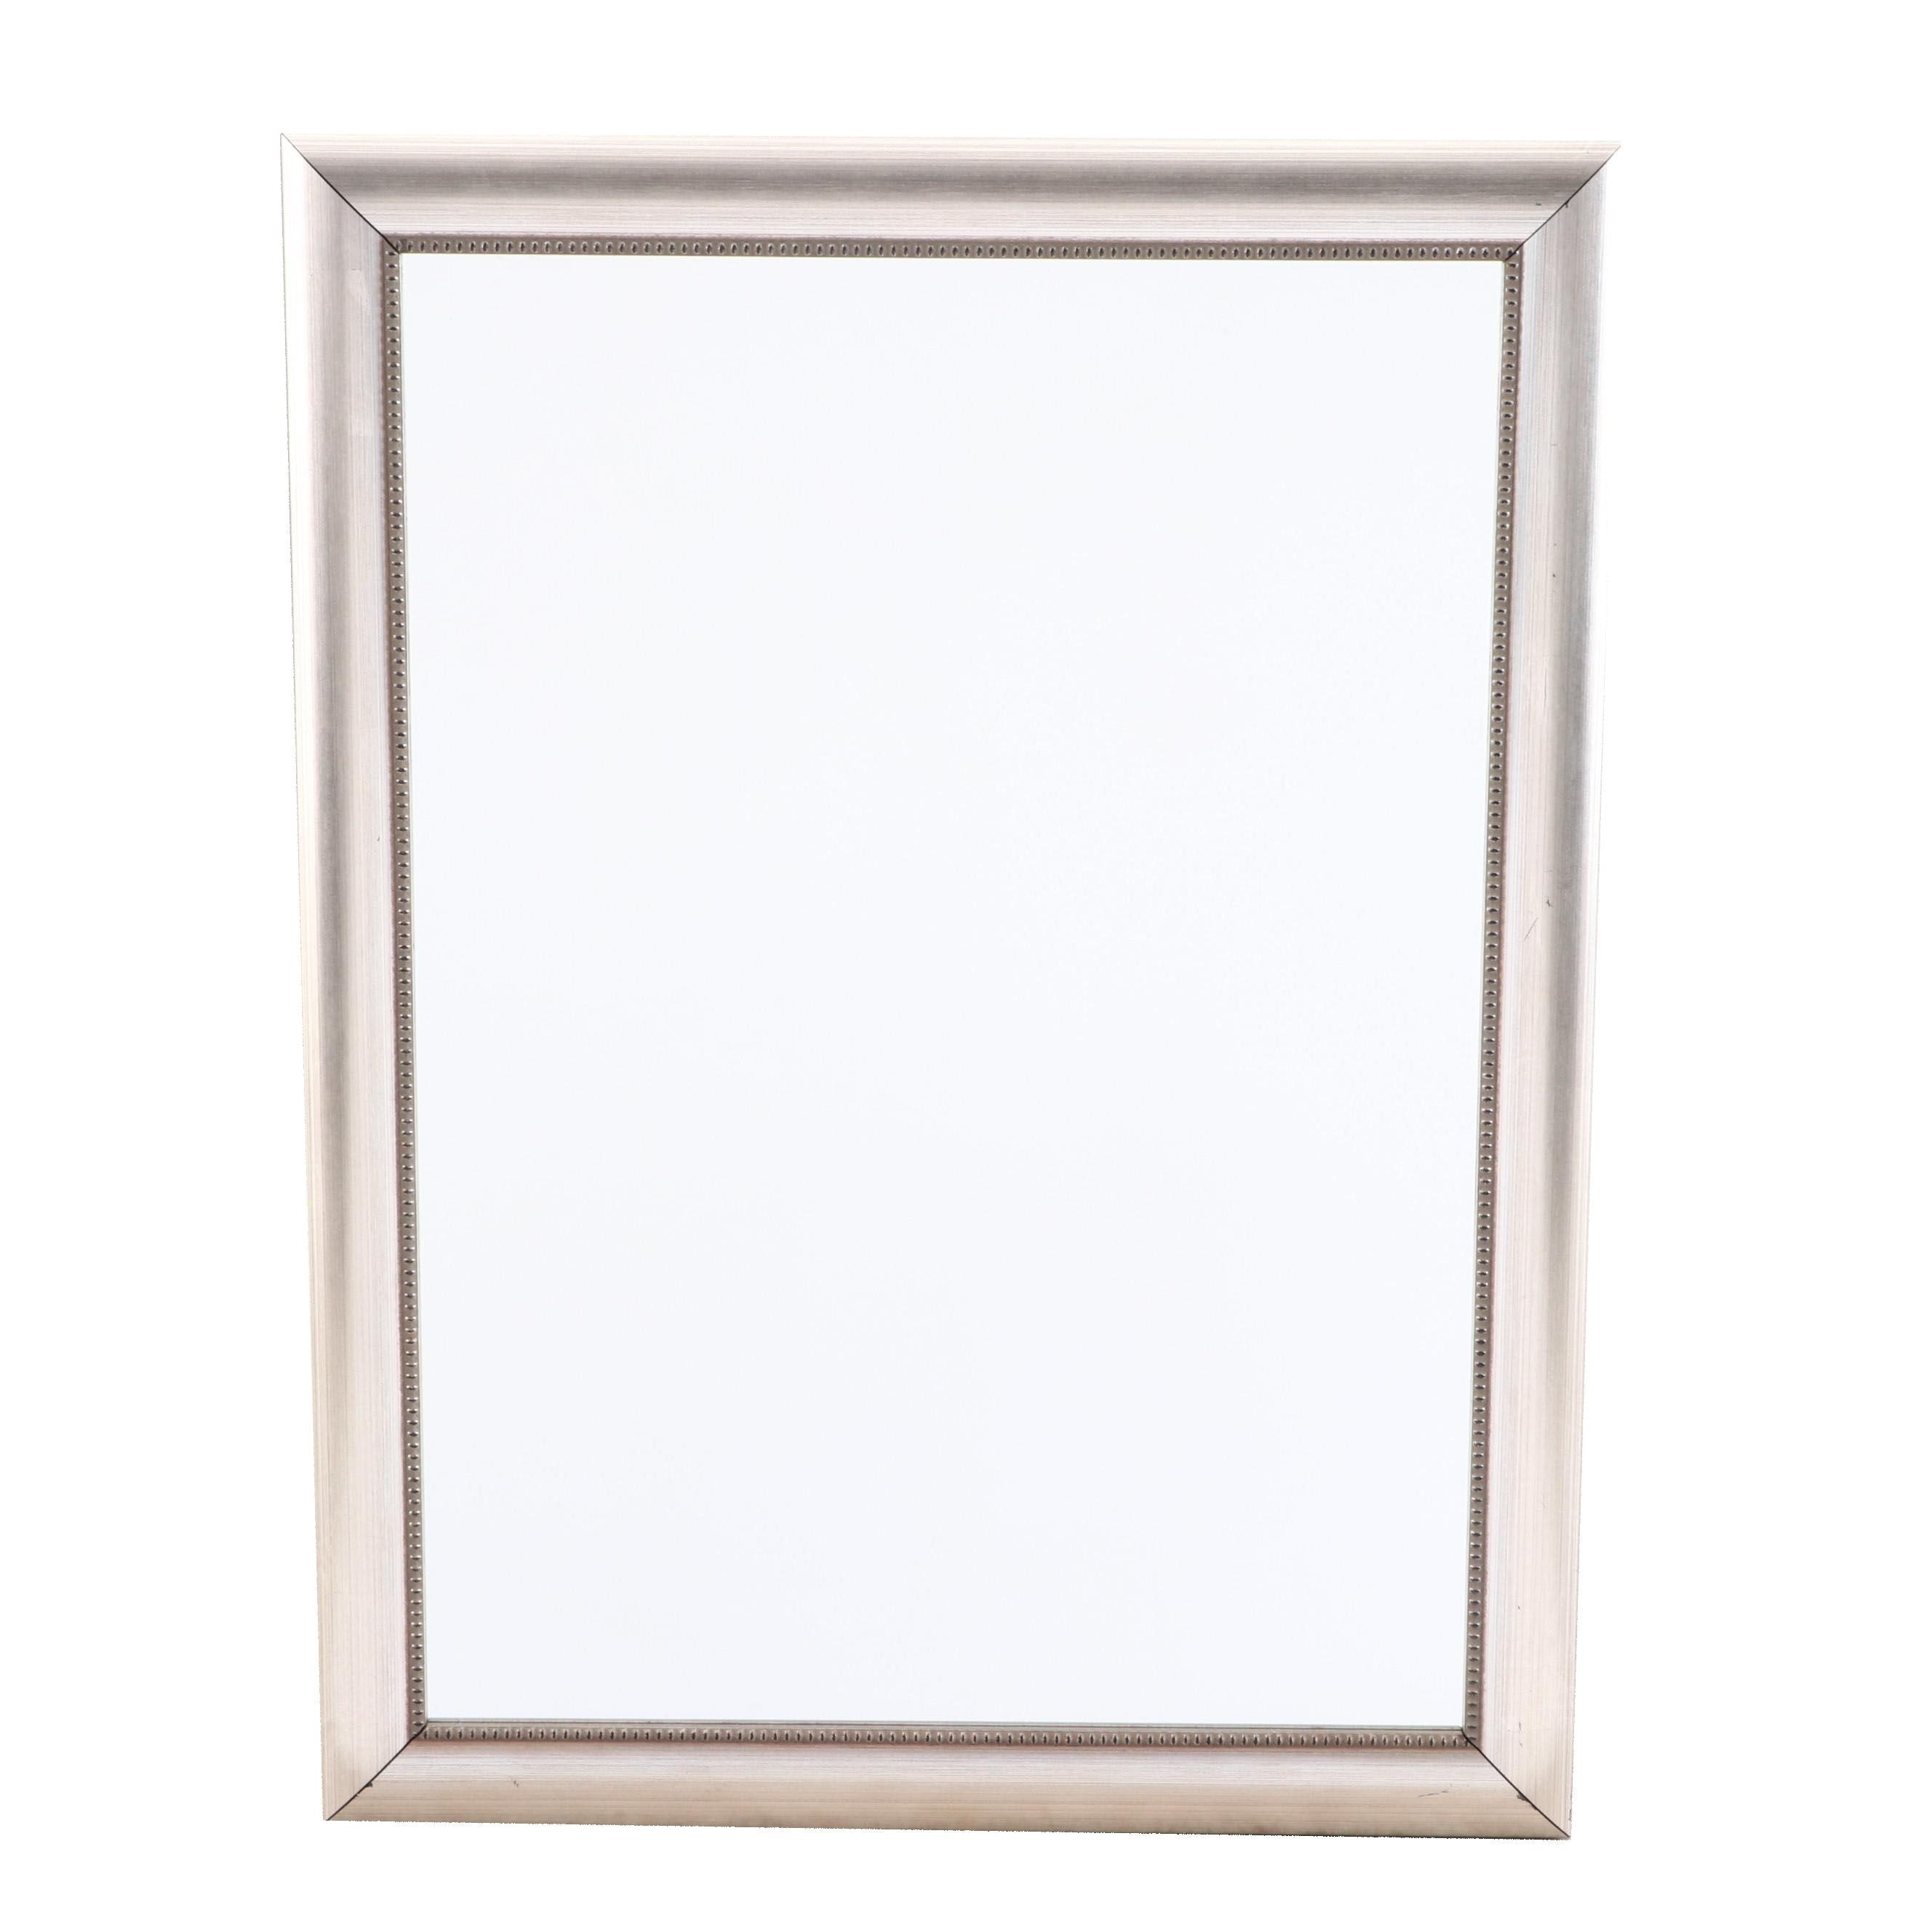 Painted Silver Finish Wall Mirror